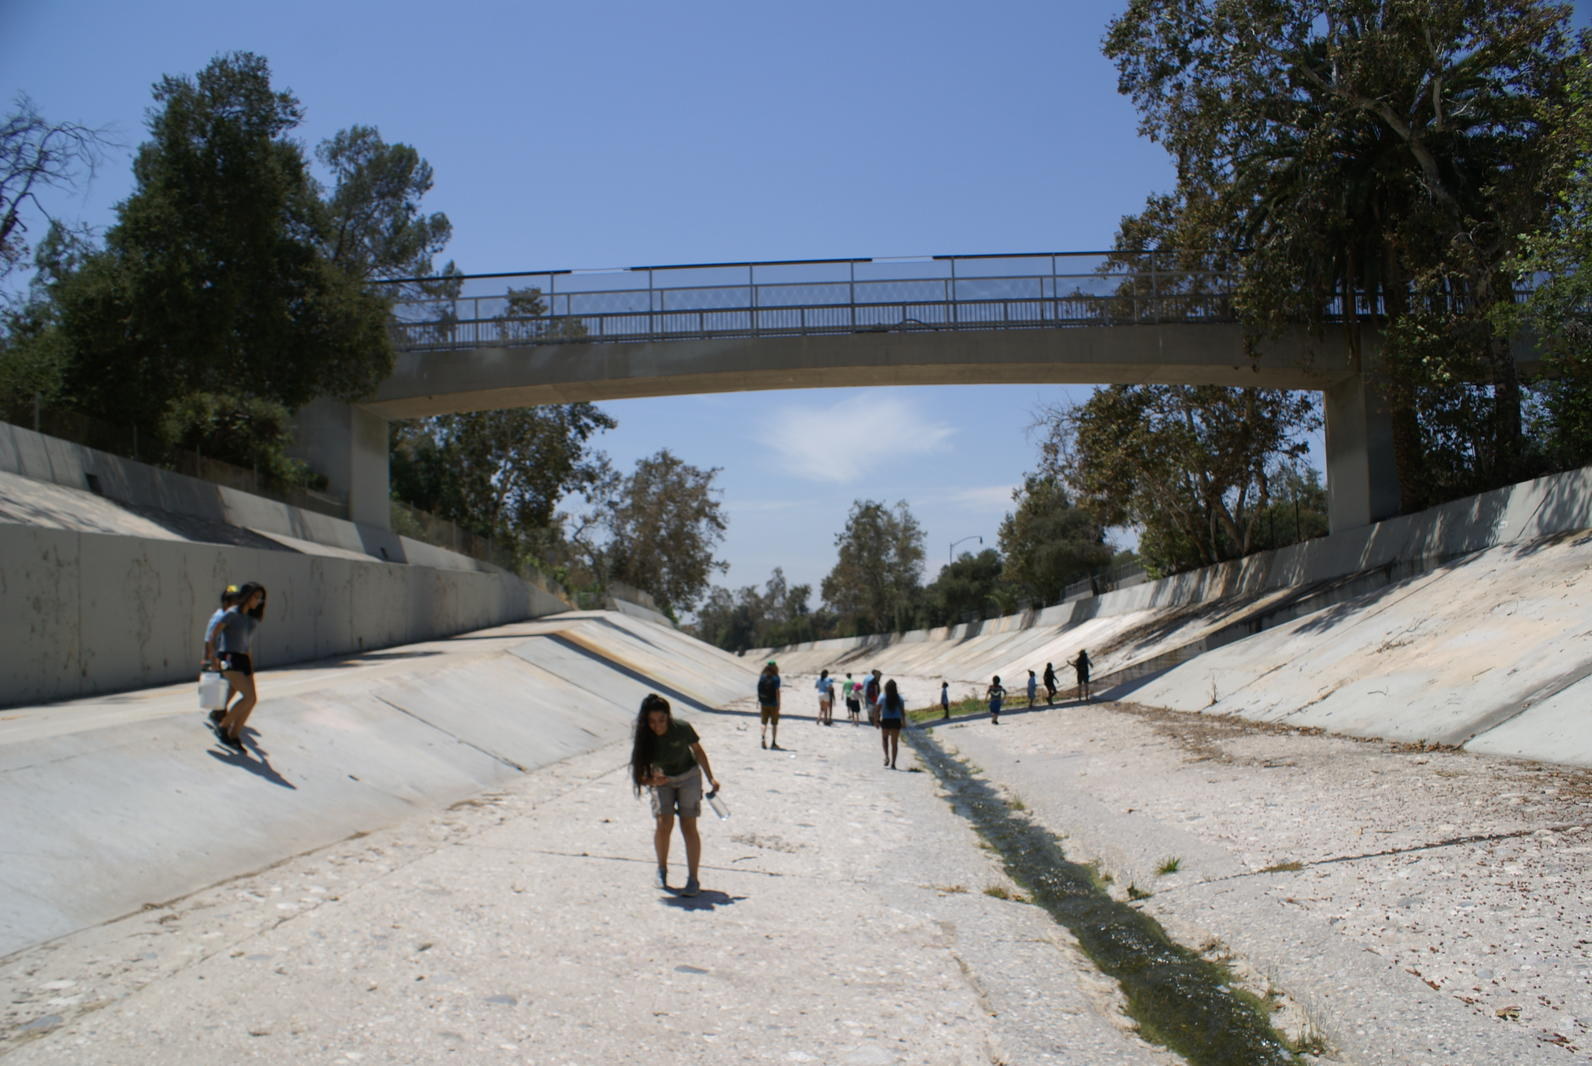 Campers in the Arroyo Seco